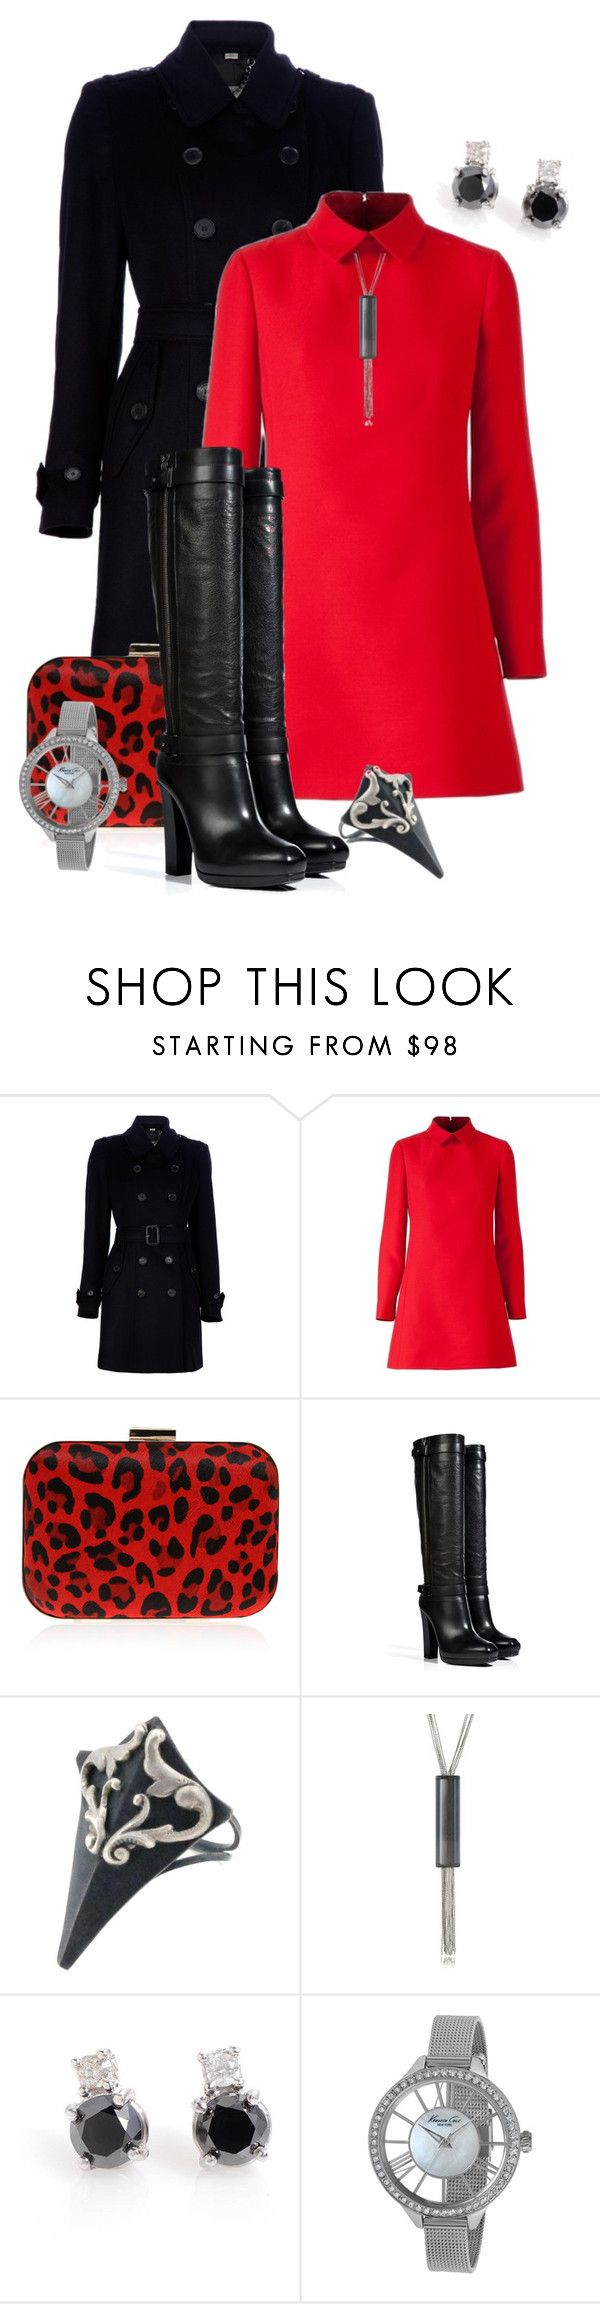 """Untitled #97"" by darksyngr ❤ liked on Polyvore featuring Burberry, Carvela Kurt Geiger, Belstaff, Sian Bostwick Jewellery, MM6 Maison Margiela and Kenneth Cole"